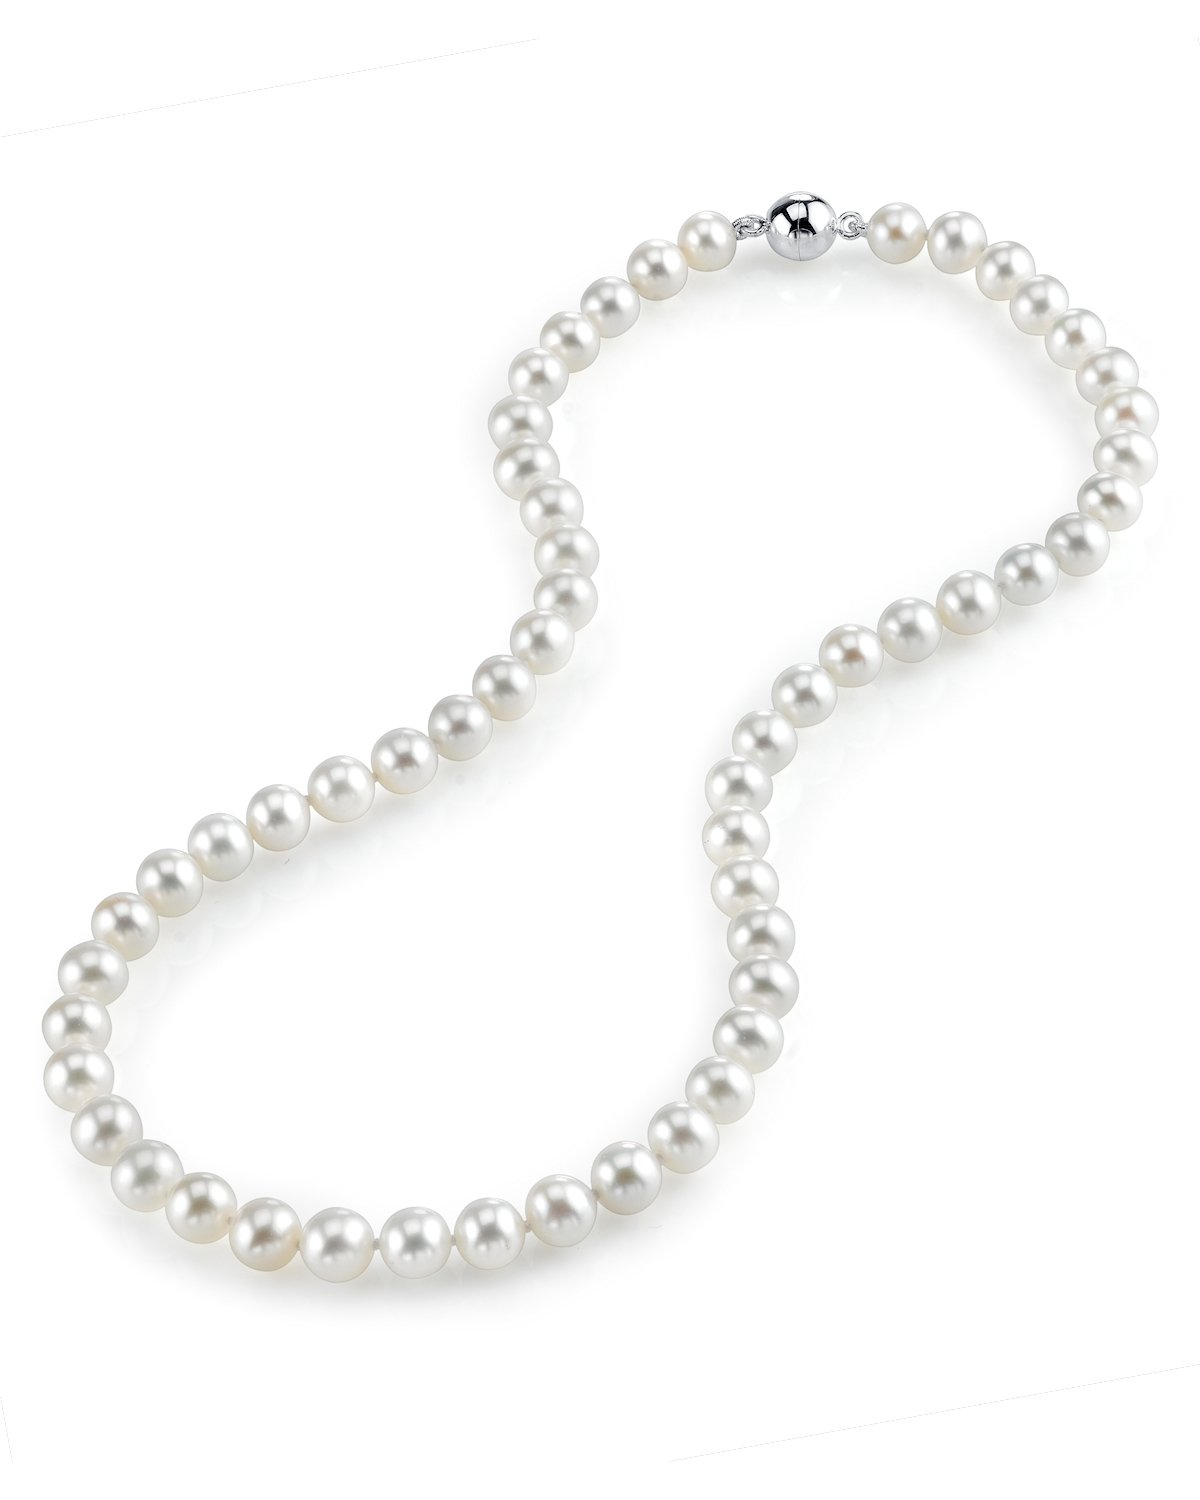 THE PEARL SOURCE 8-9mm AAA Quality Round White Freshwater Cultured Pearl Necklace for Women with Magnetic Clasp in 20'' Matinee Length